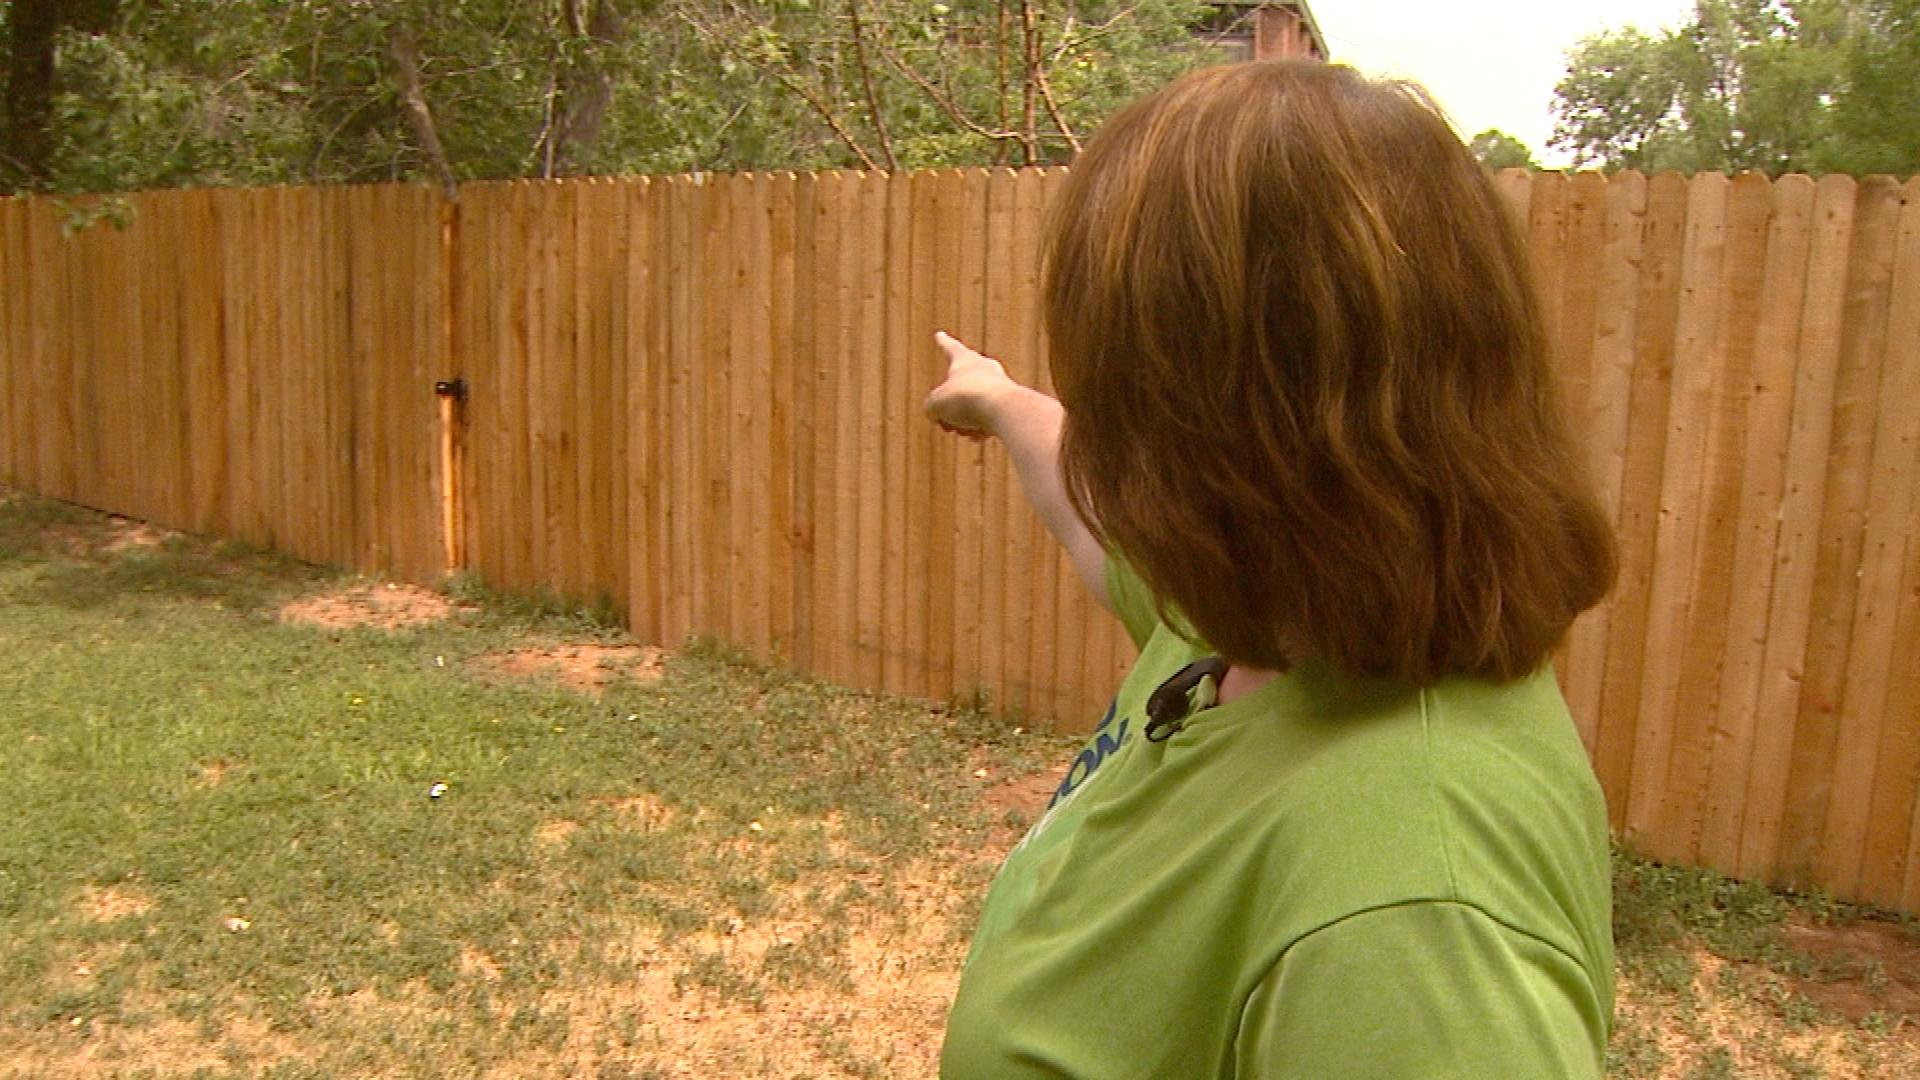 Debra Gania points to where the coyote jumped her tall fence (credit: CBS)